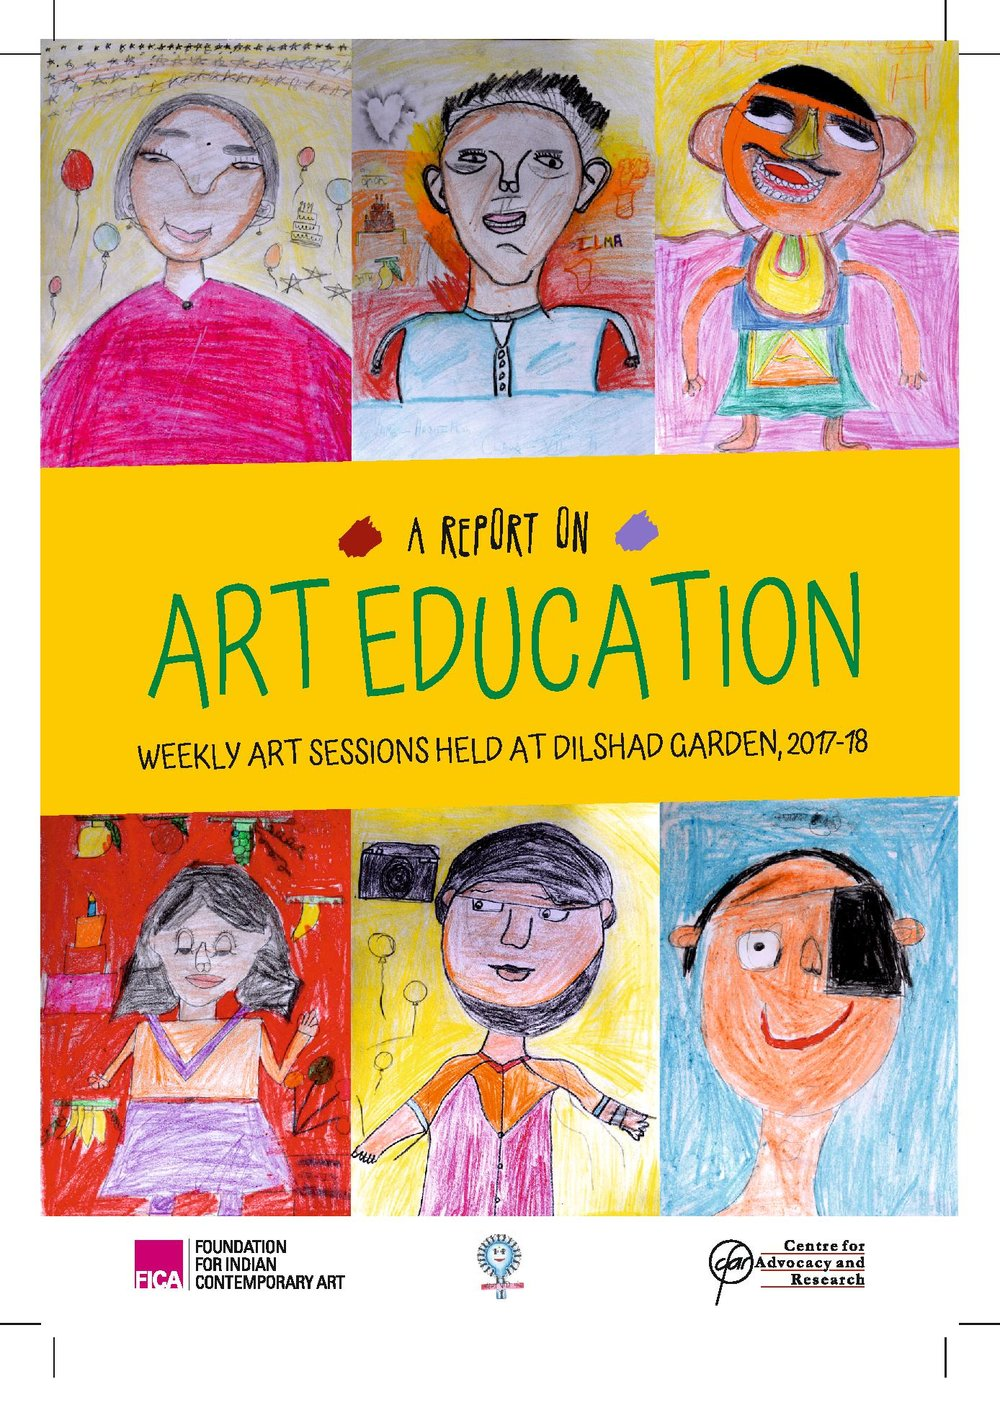 A REPORT ON ART EDUCATION | WEEKLY ART SESSIONS AT DILSHAD GARDEN BY NILANJANA NANDY | IN COLLABORATION WITH CFAR | PDF